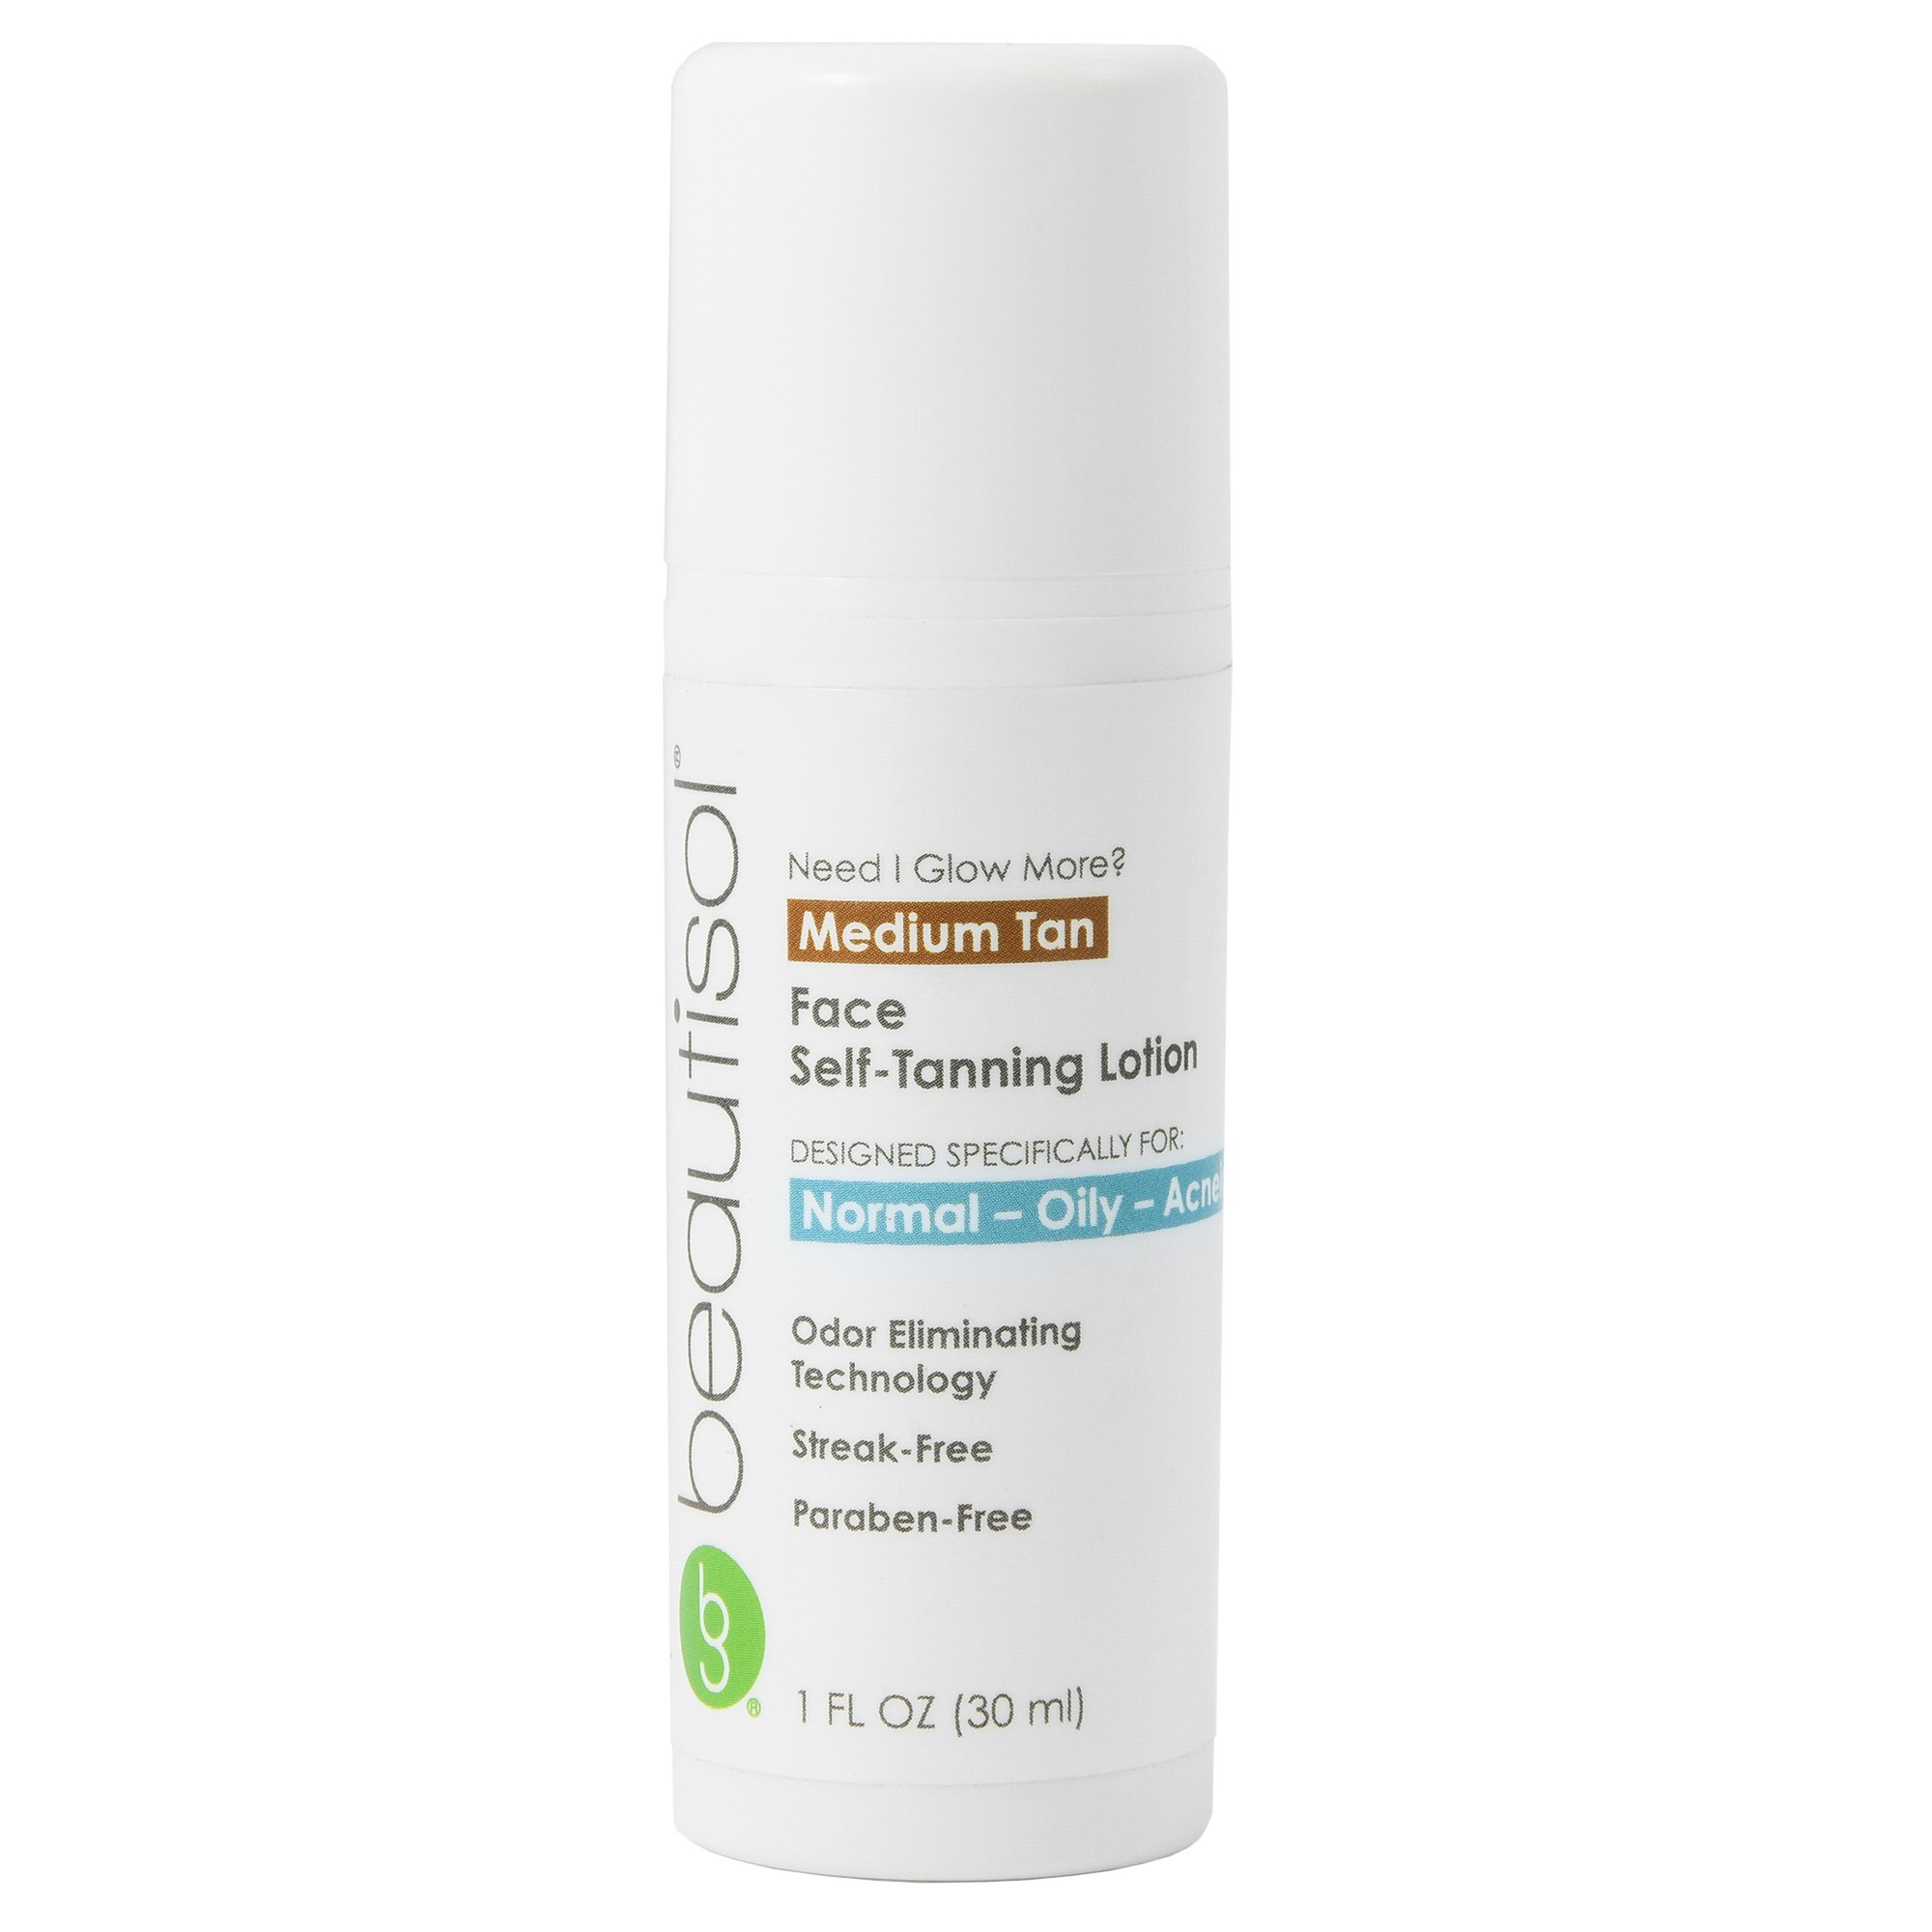 Beautisol Need I Glow More? Sunless Face Tanner for Oily Skin, 1 Ounce by Beautisol